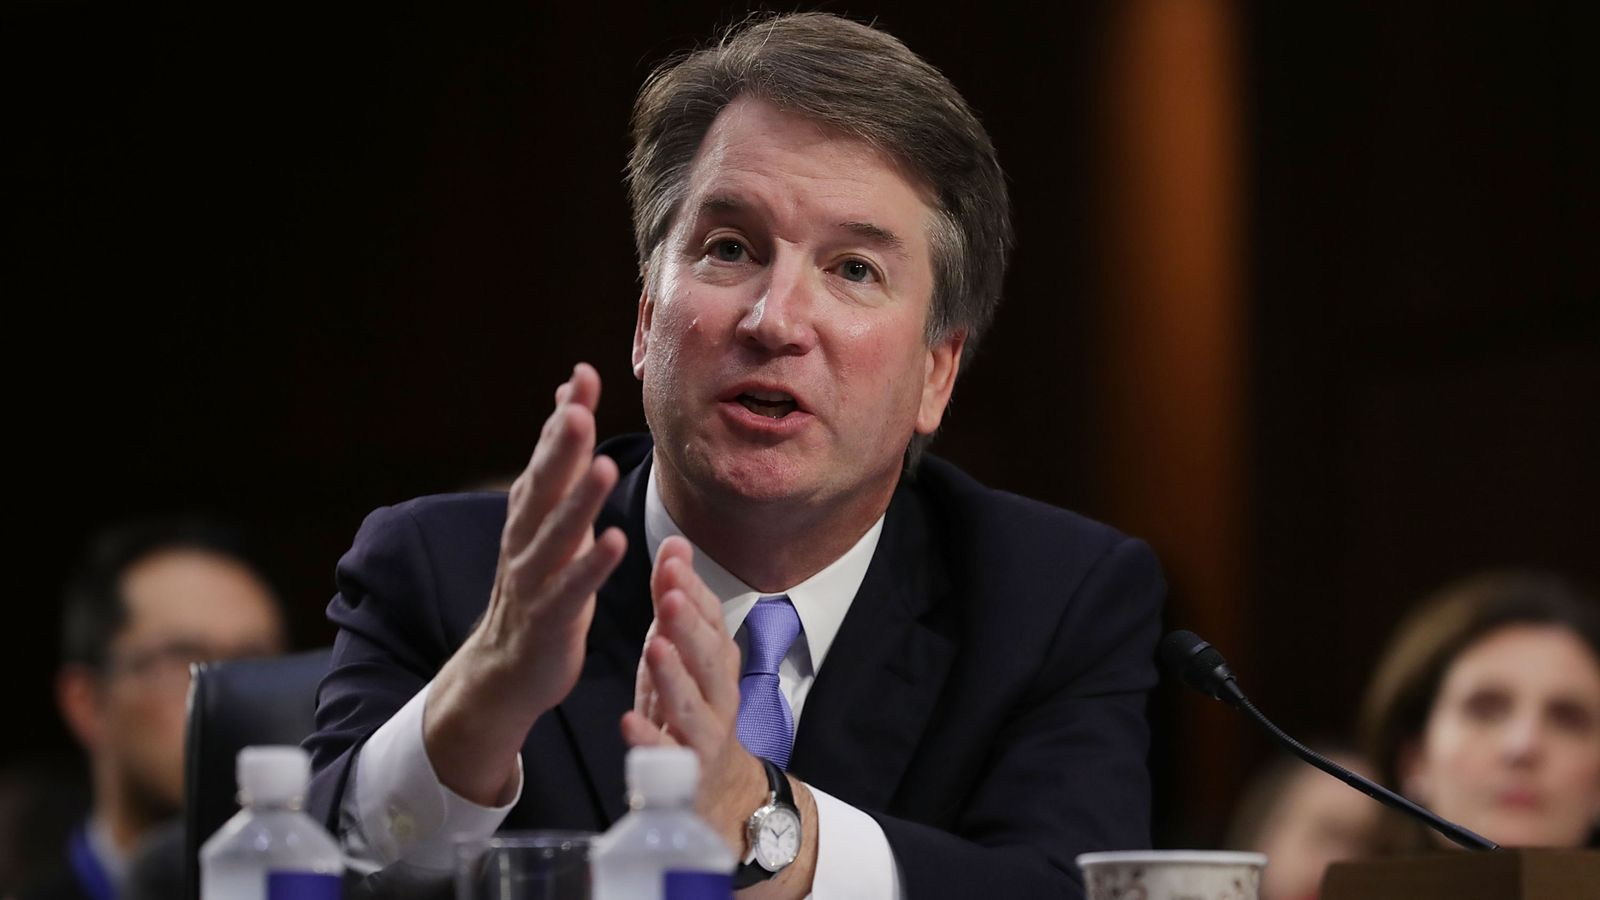 Brett Kavanaugh 'won't be intimidated' as Supreme Court nominee hits back at 'smears'